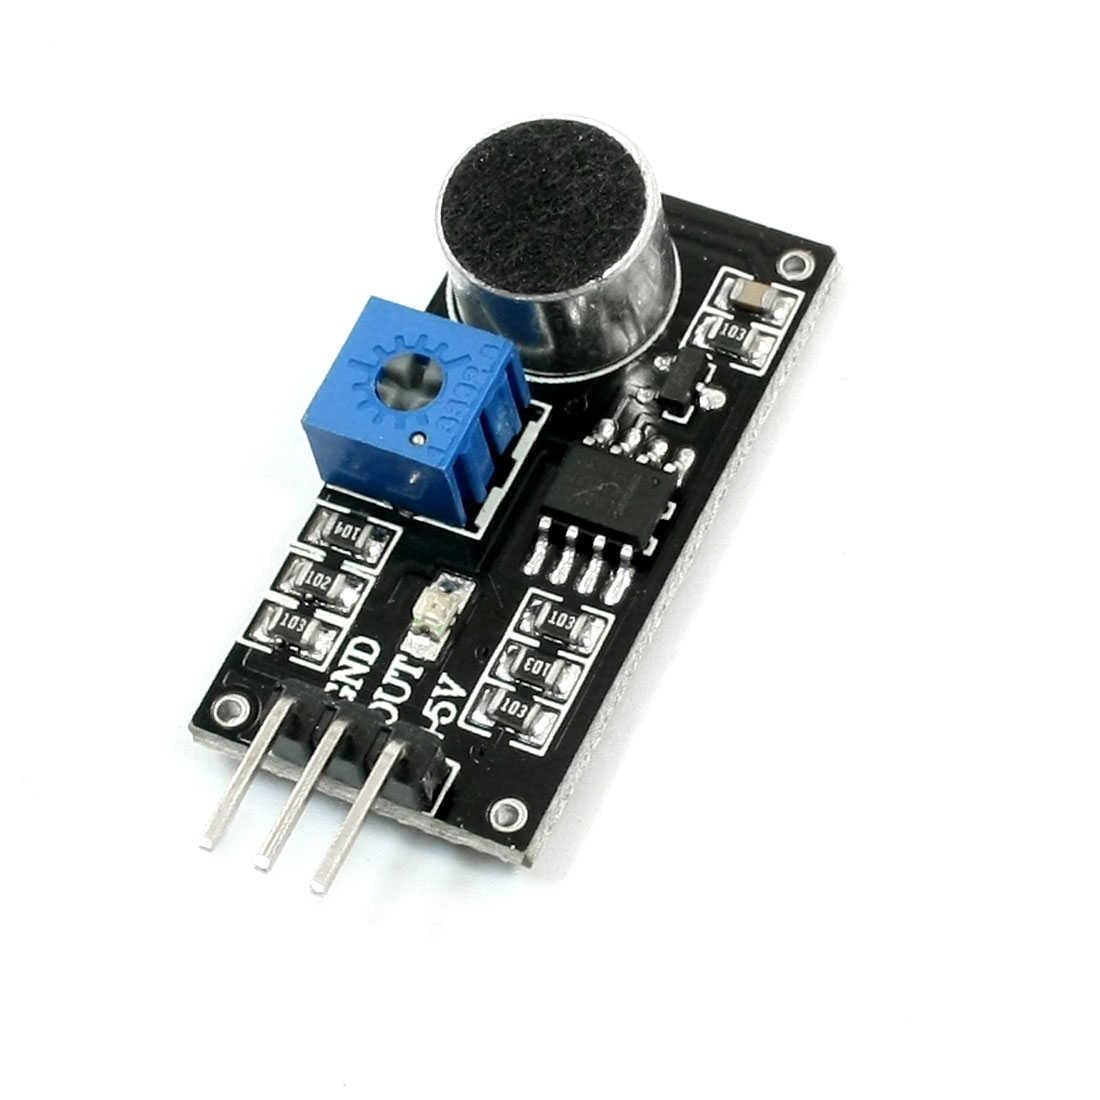 3Pin LM393 Sound Detection Sensor Transducer Module